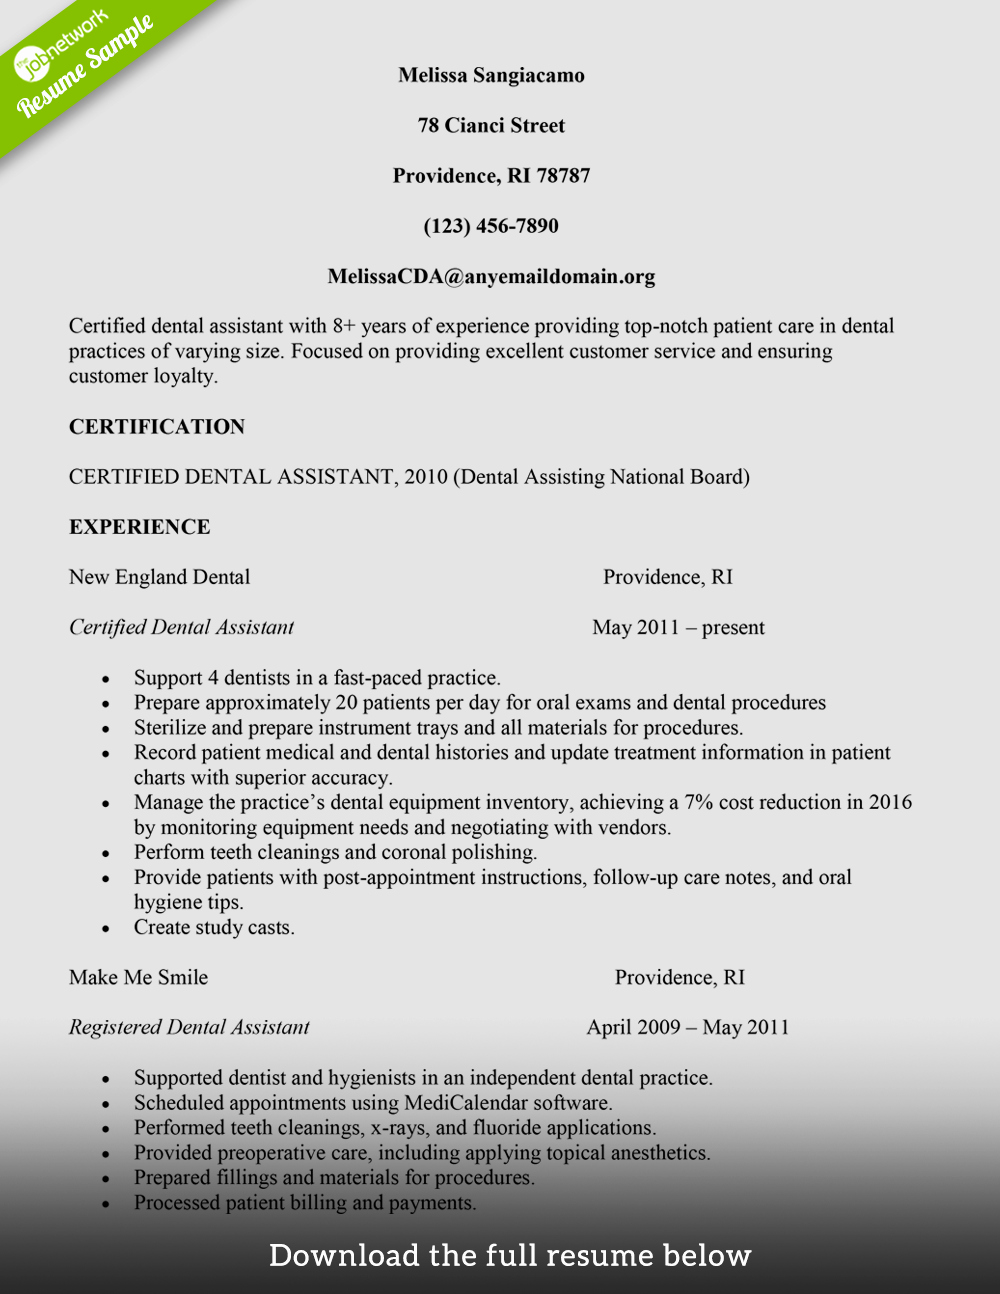 Dentist Cv Sample Pdf Inspirational How to Build A Great Dental assistant Resume Examples